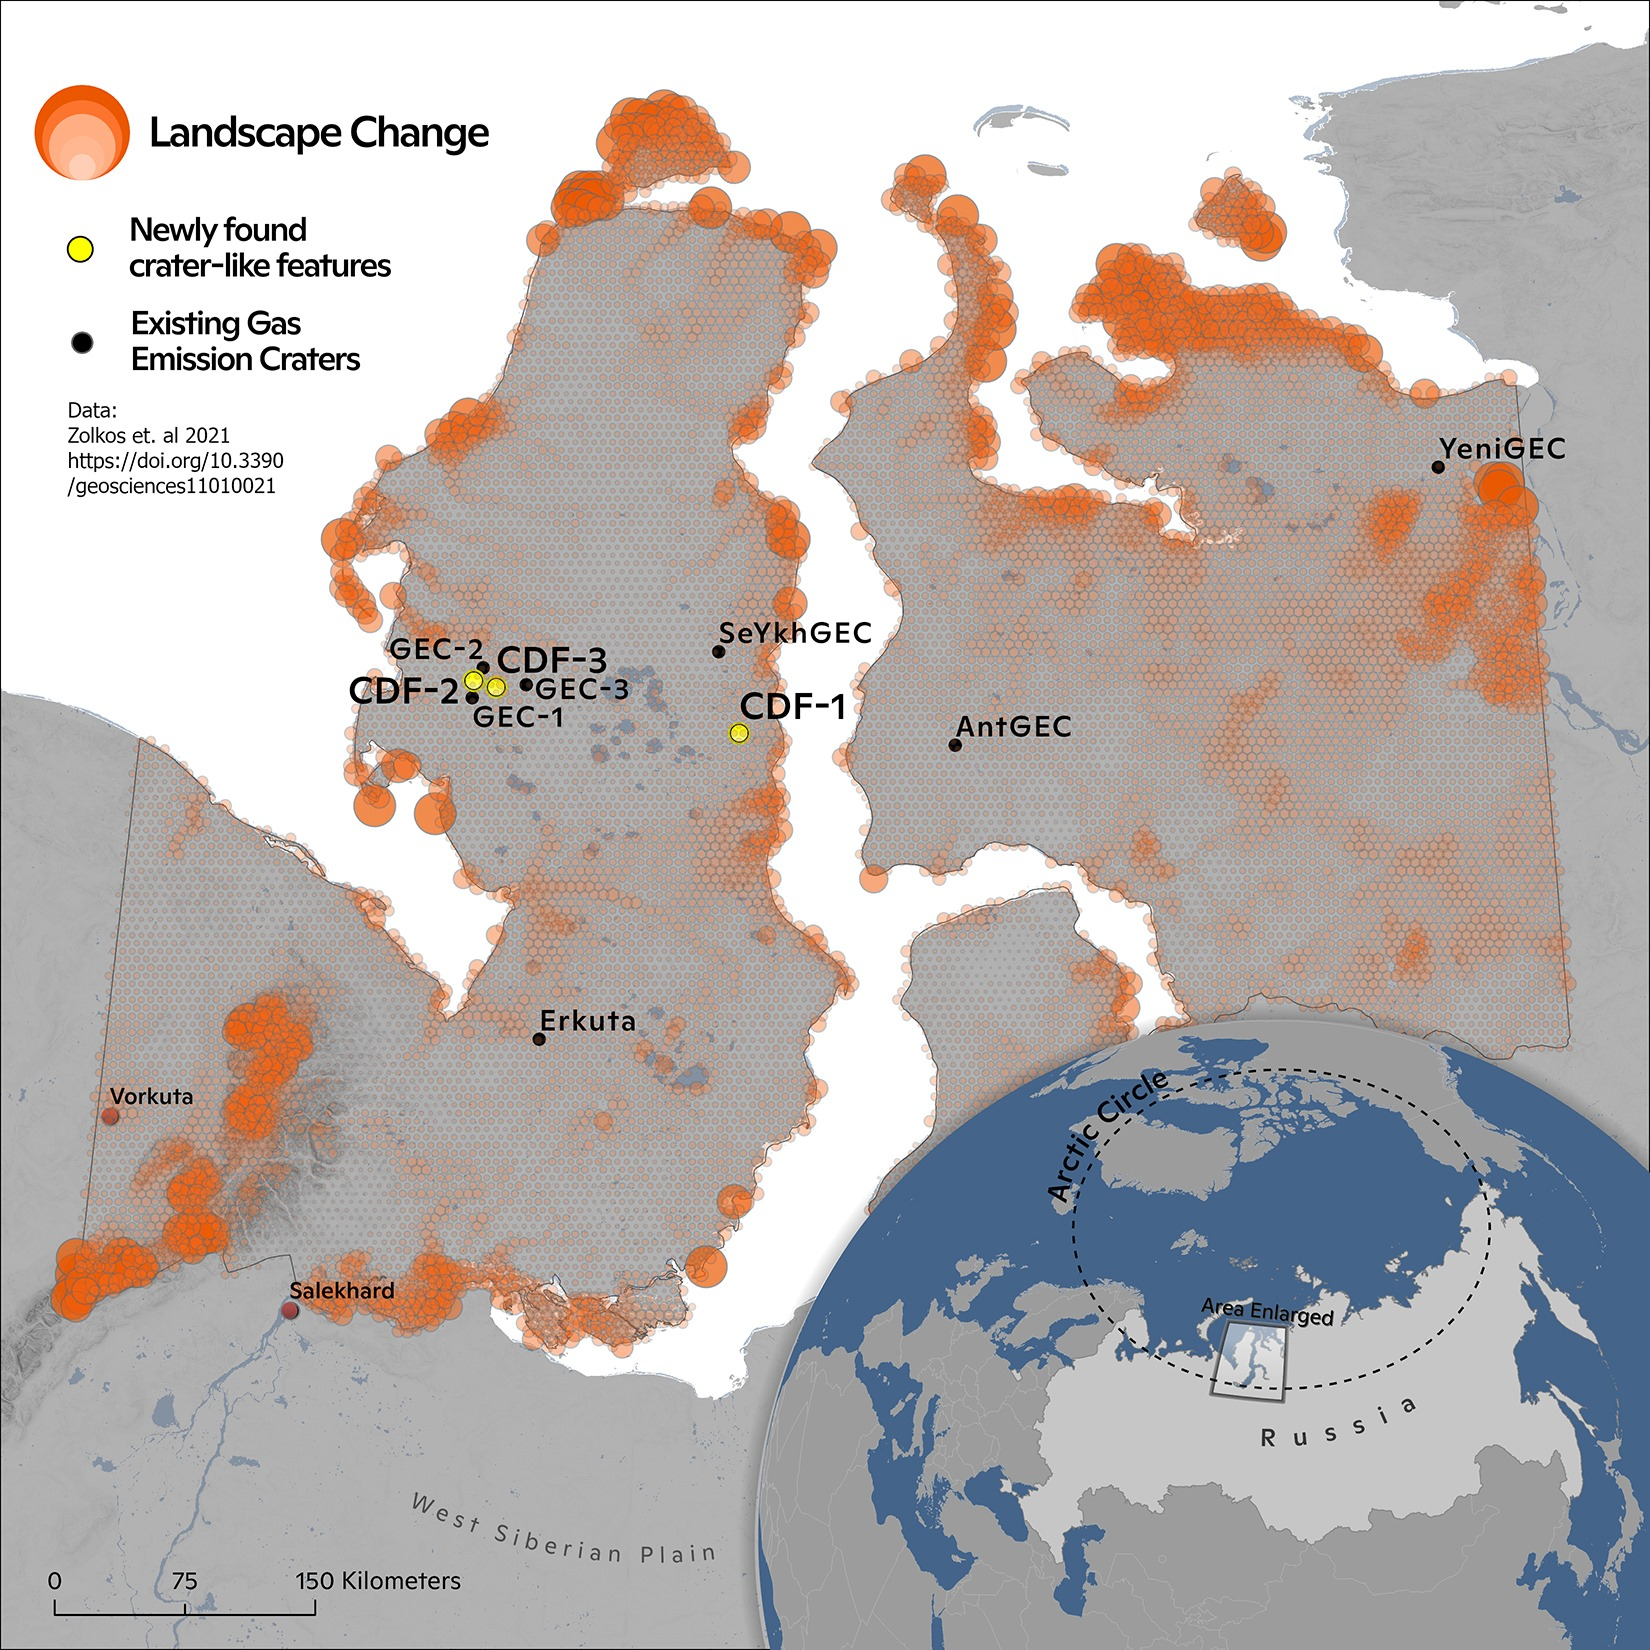 Map showing the extent of landscape changes and location of gas emission craters found.